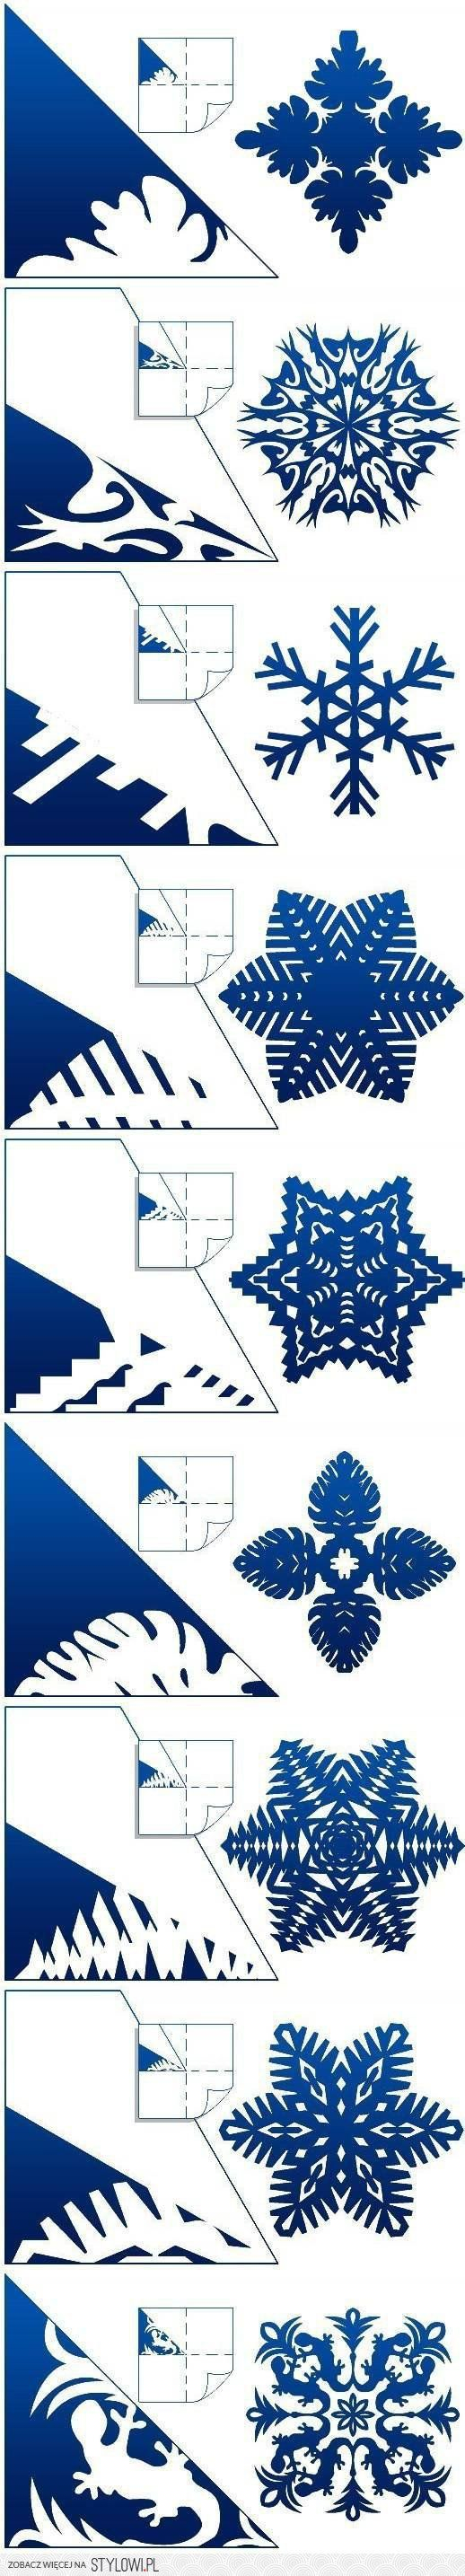 Christmas DIY Paper Snowflake Projects 2D&3D to Beautify Your Ambiance [Detailed Guide+Templates] homesthetics (3)